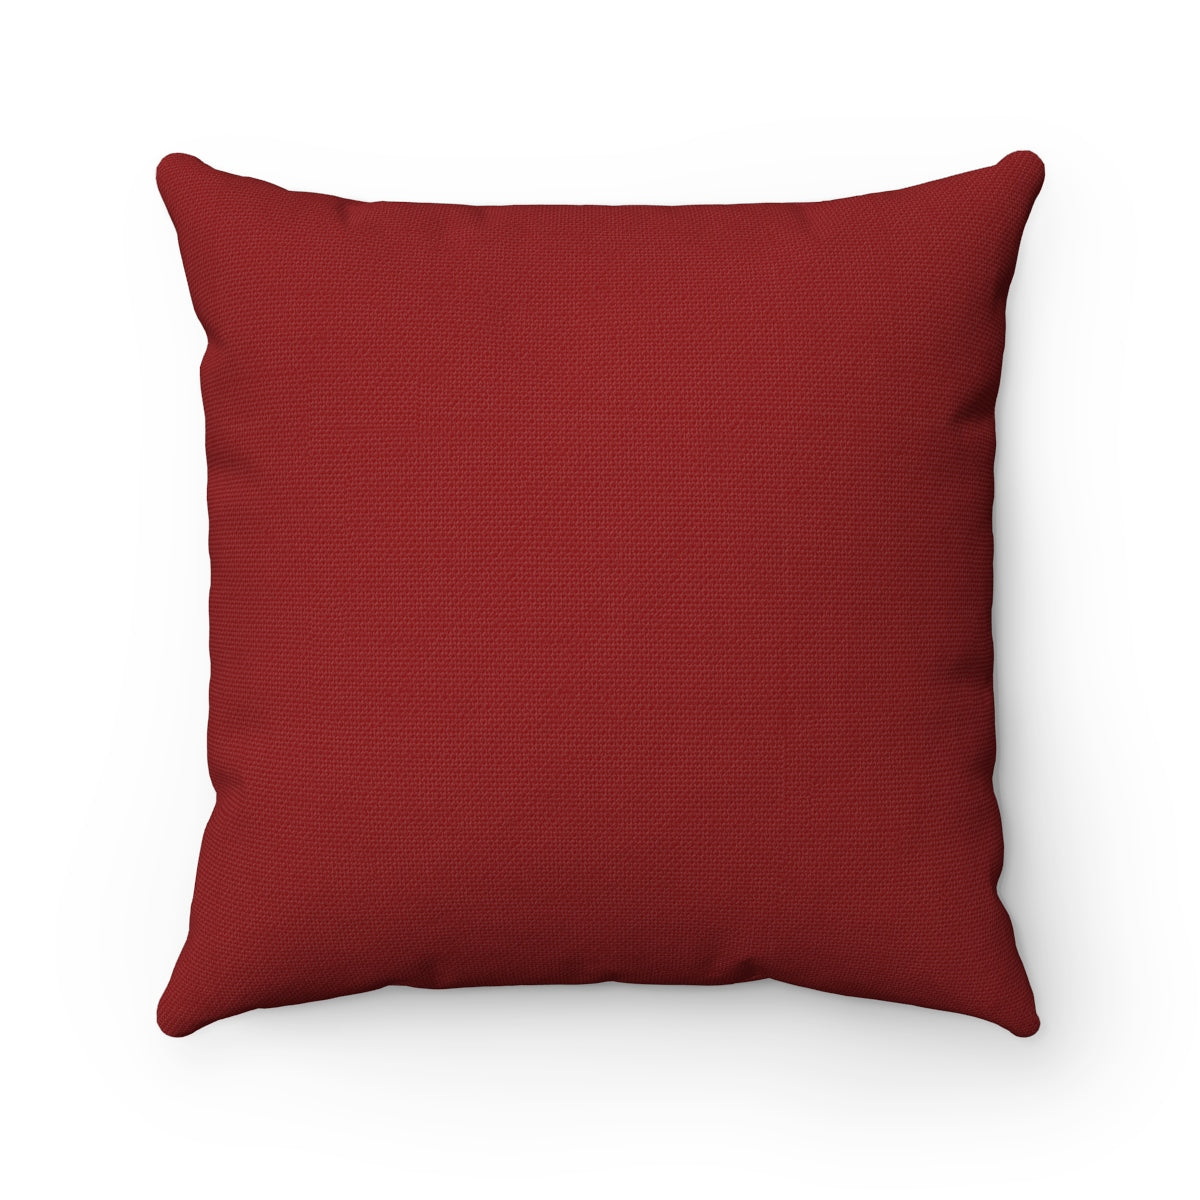 A Homefront Girl® Christmas - Spun Polyester Square Pillow - Homefront Girl